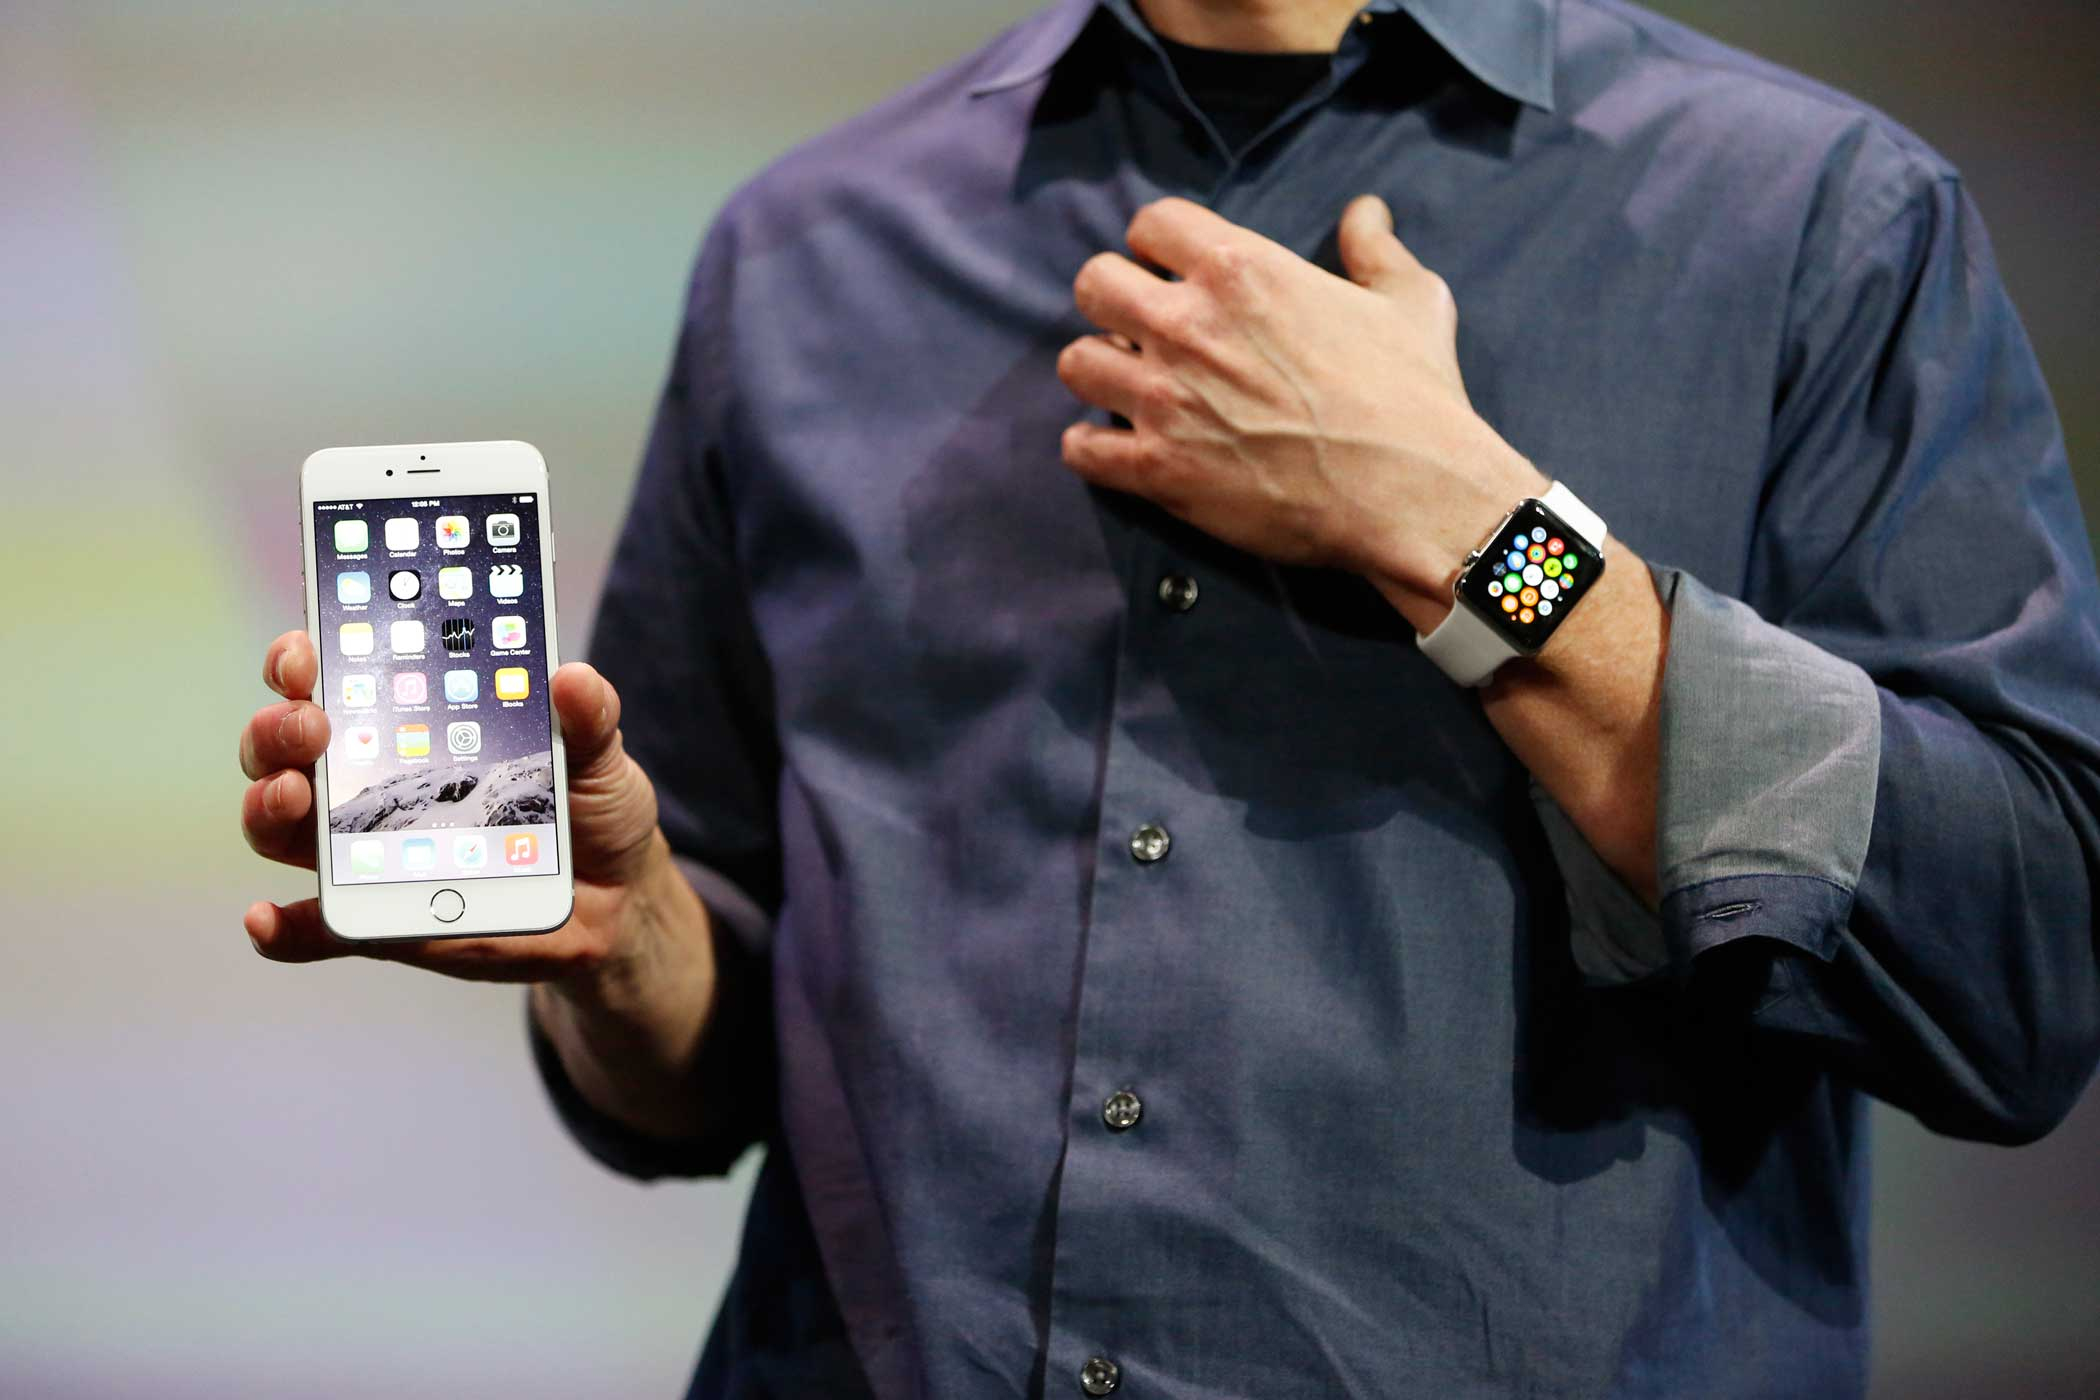 The Watch must be paired with an iPhone for many of its functions. The device piggybacks on the phone's data and GPS connections to pipe in directions or incoming voice calls and text messages, for instance.